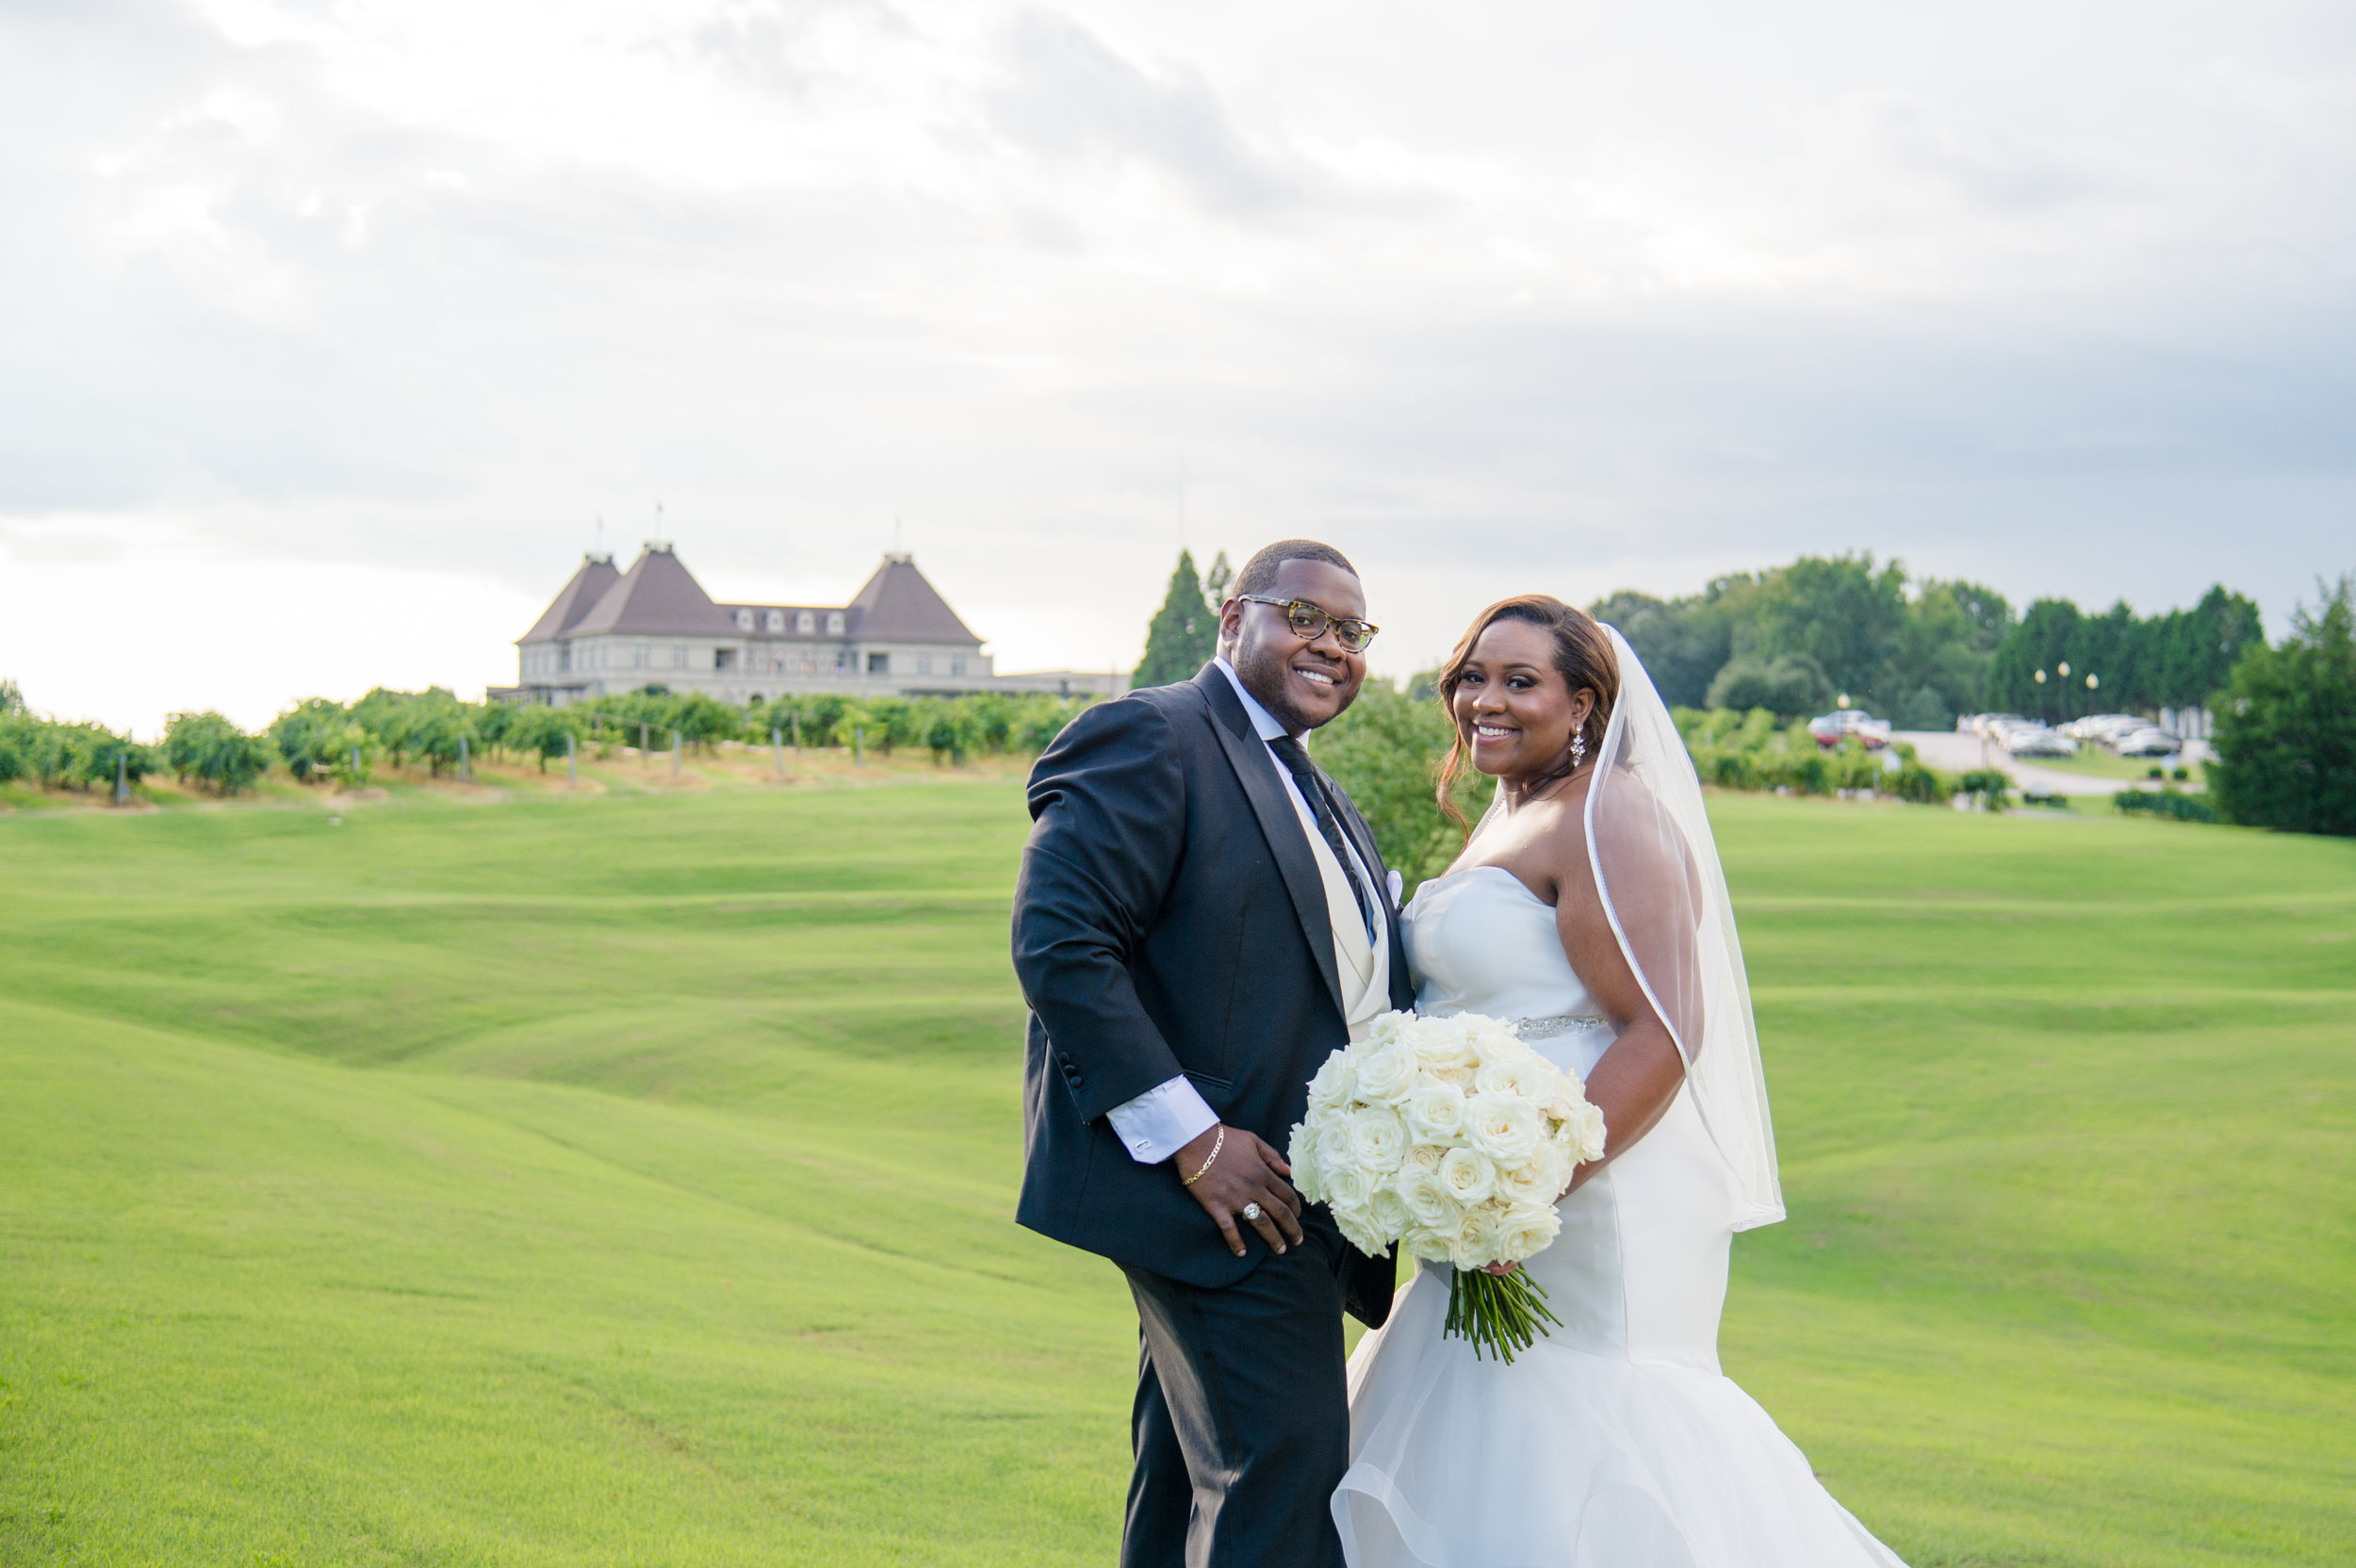 Ida&Corey_386_Wedding_ChateauElan_Atlanta_Ga.jpg